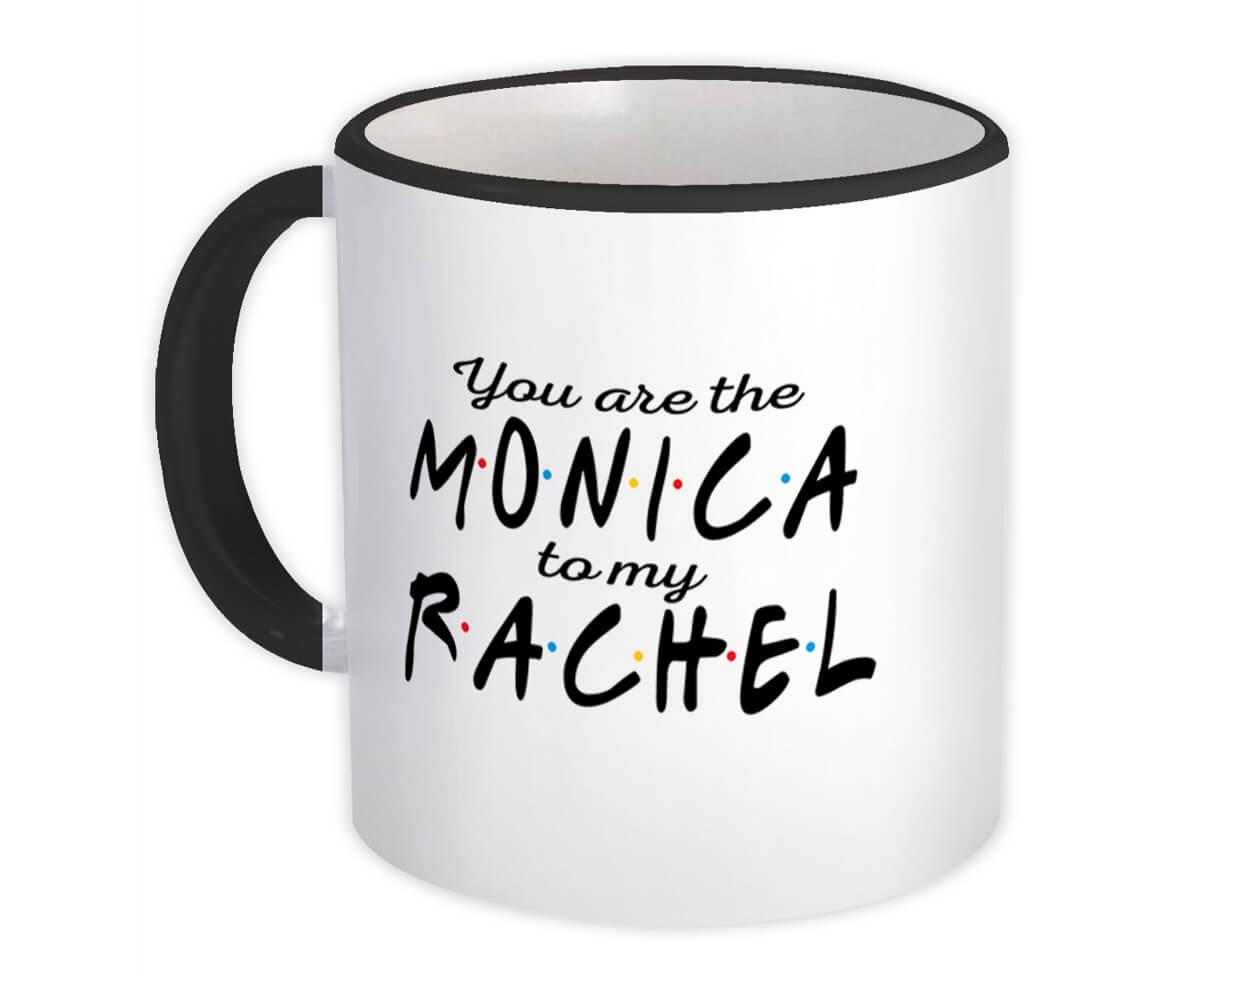 Friends : Gift Mug You Are The Monica to My Rachel